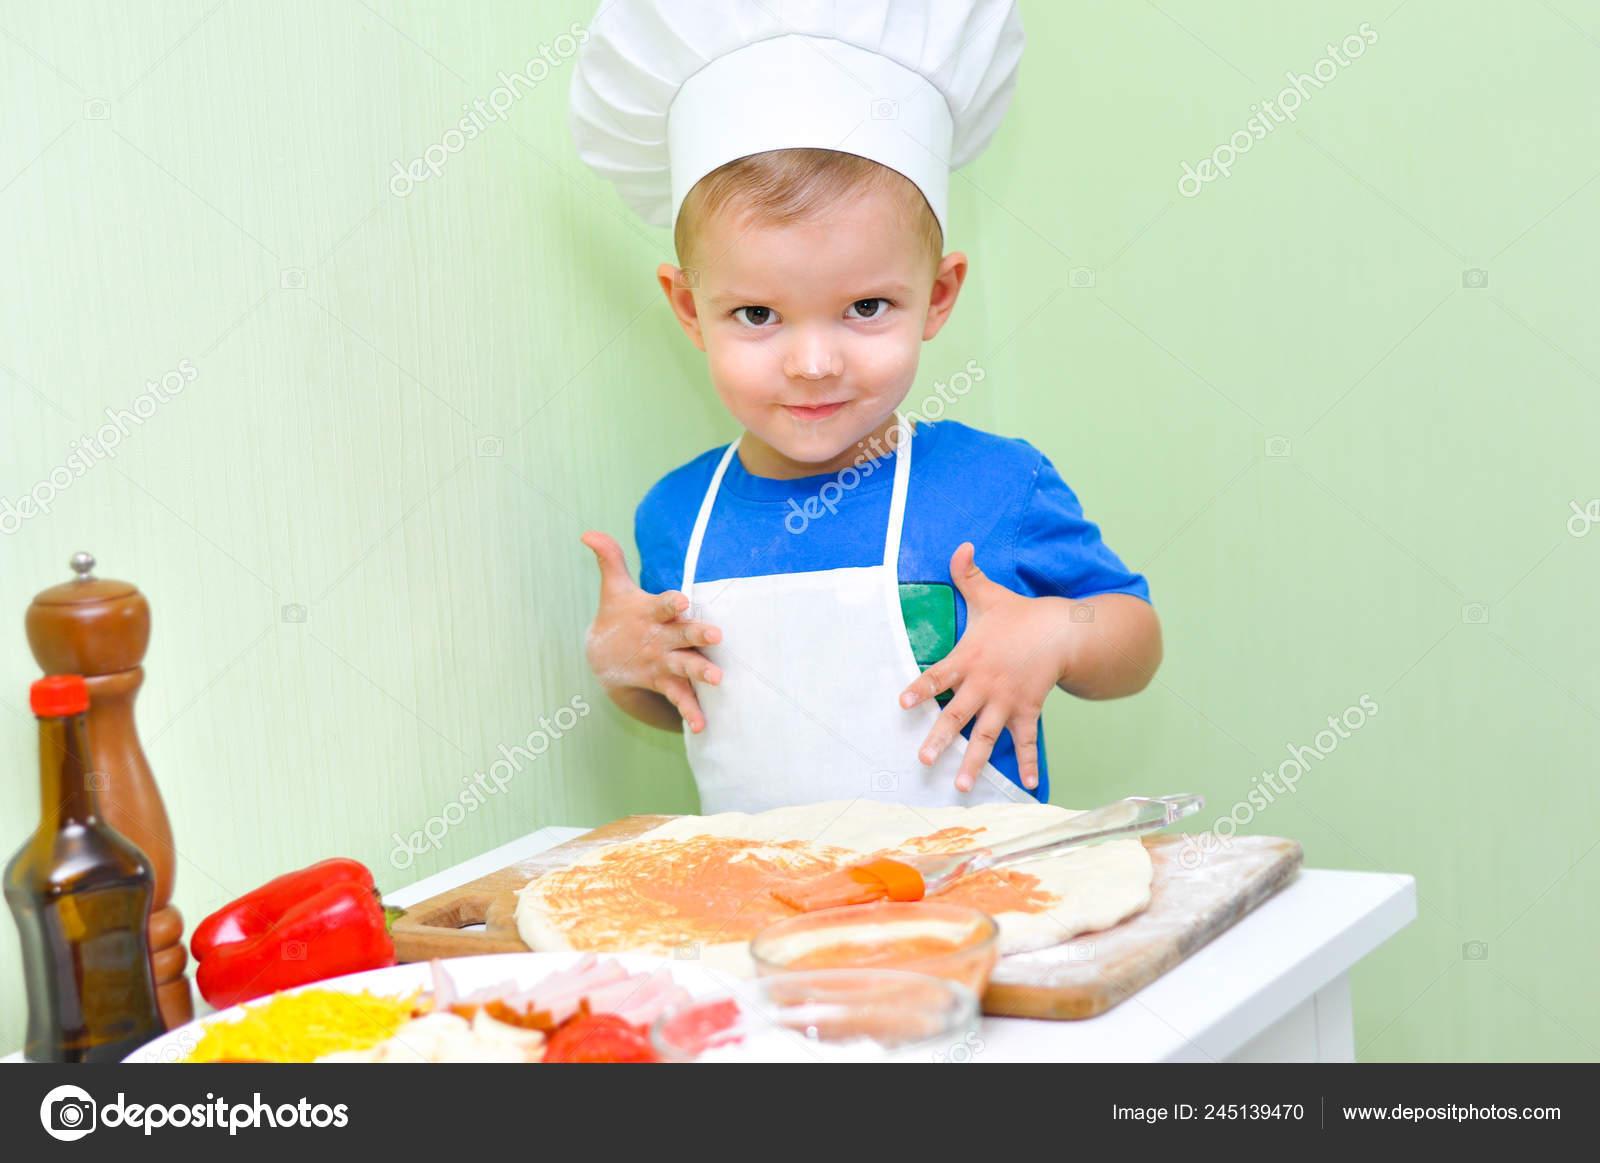 Little Smiling Kid Boy Cooking Pizza White Chef Hat Apron Stock